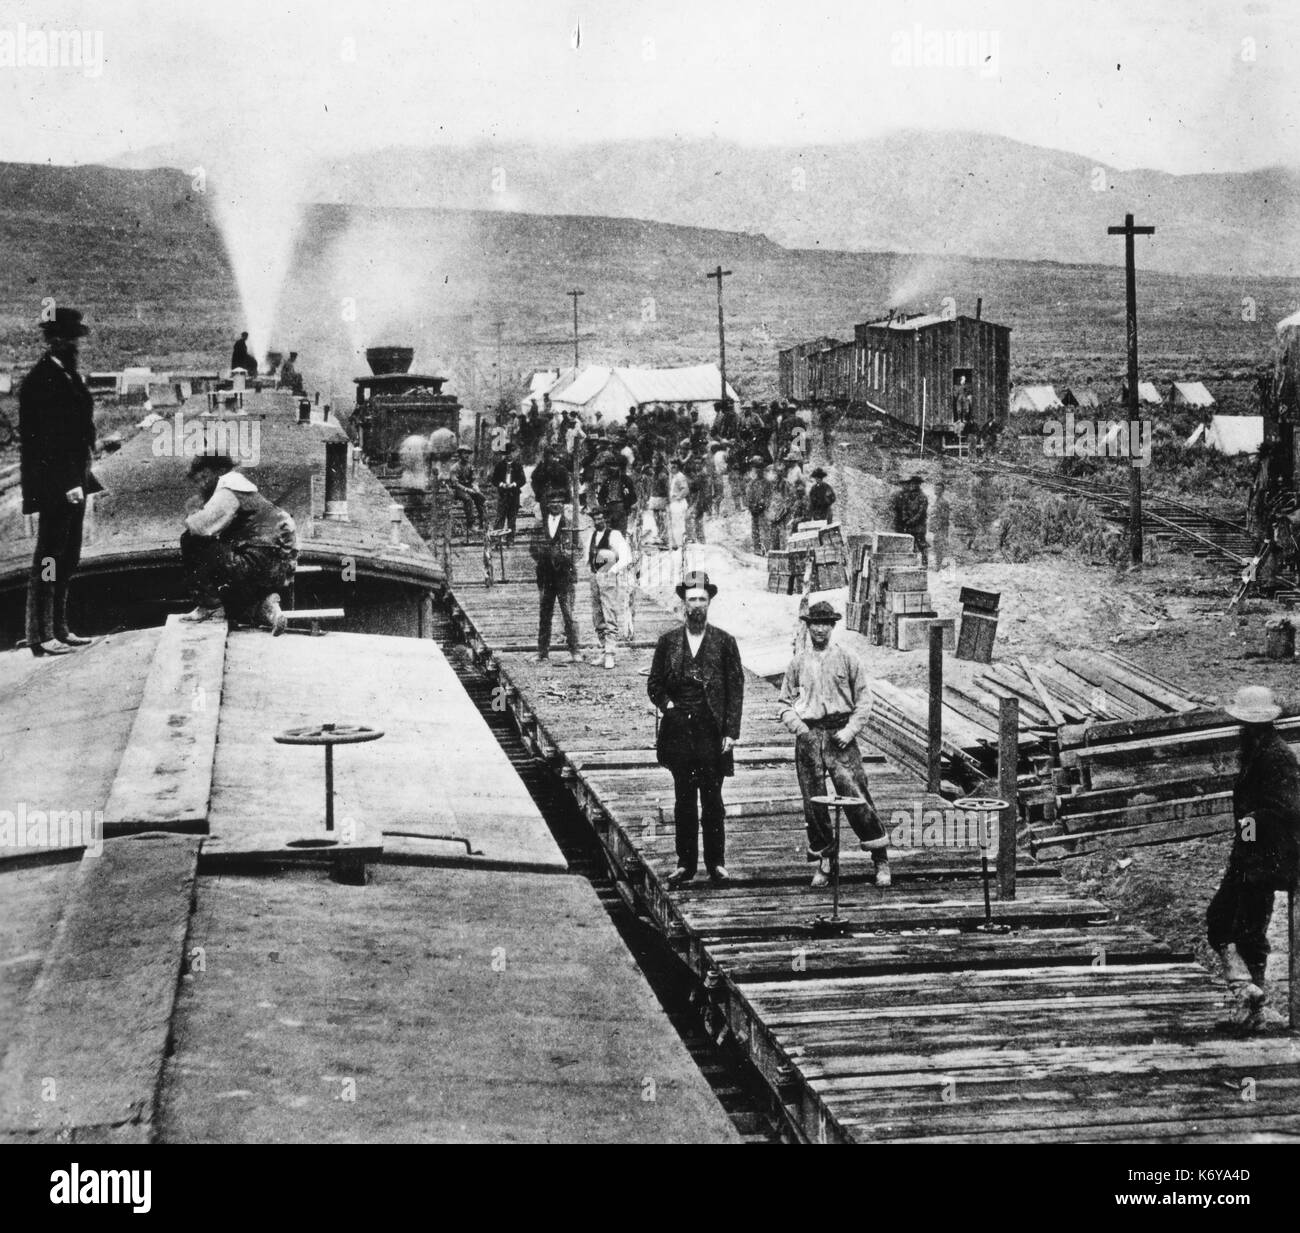 Construction Camp of the Central Pacific Railroad. Utah, April 1, 1869. - Stock Image